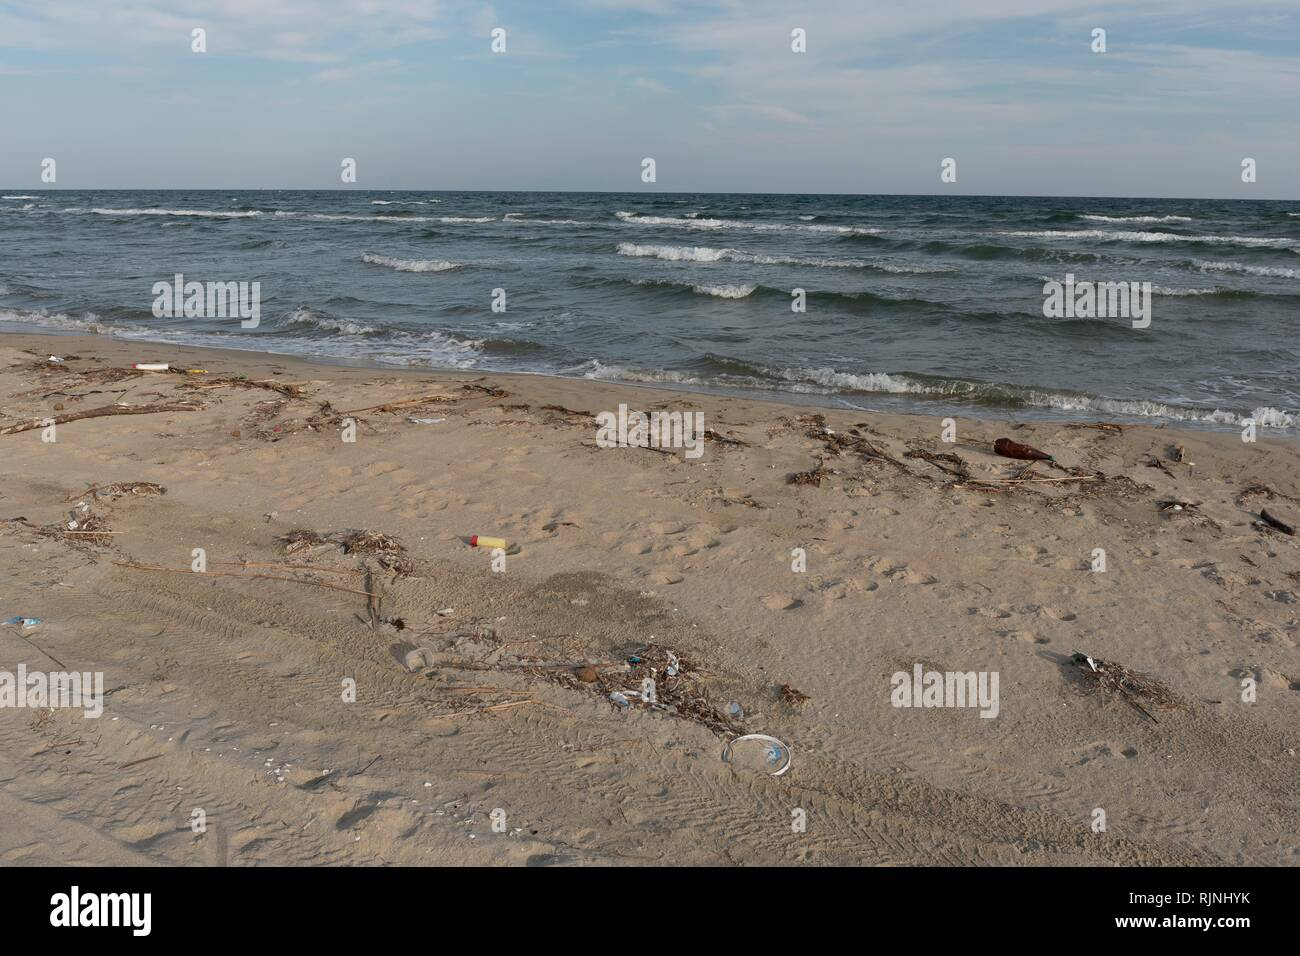 Dirty beach stripes - Stock Image